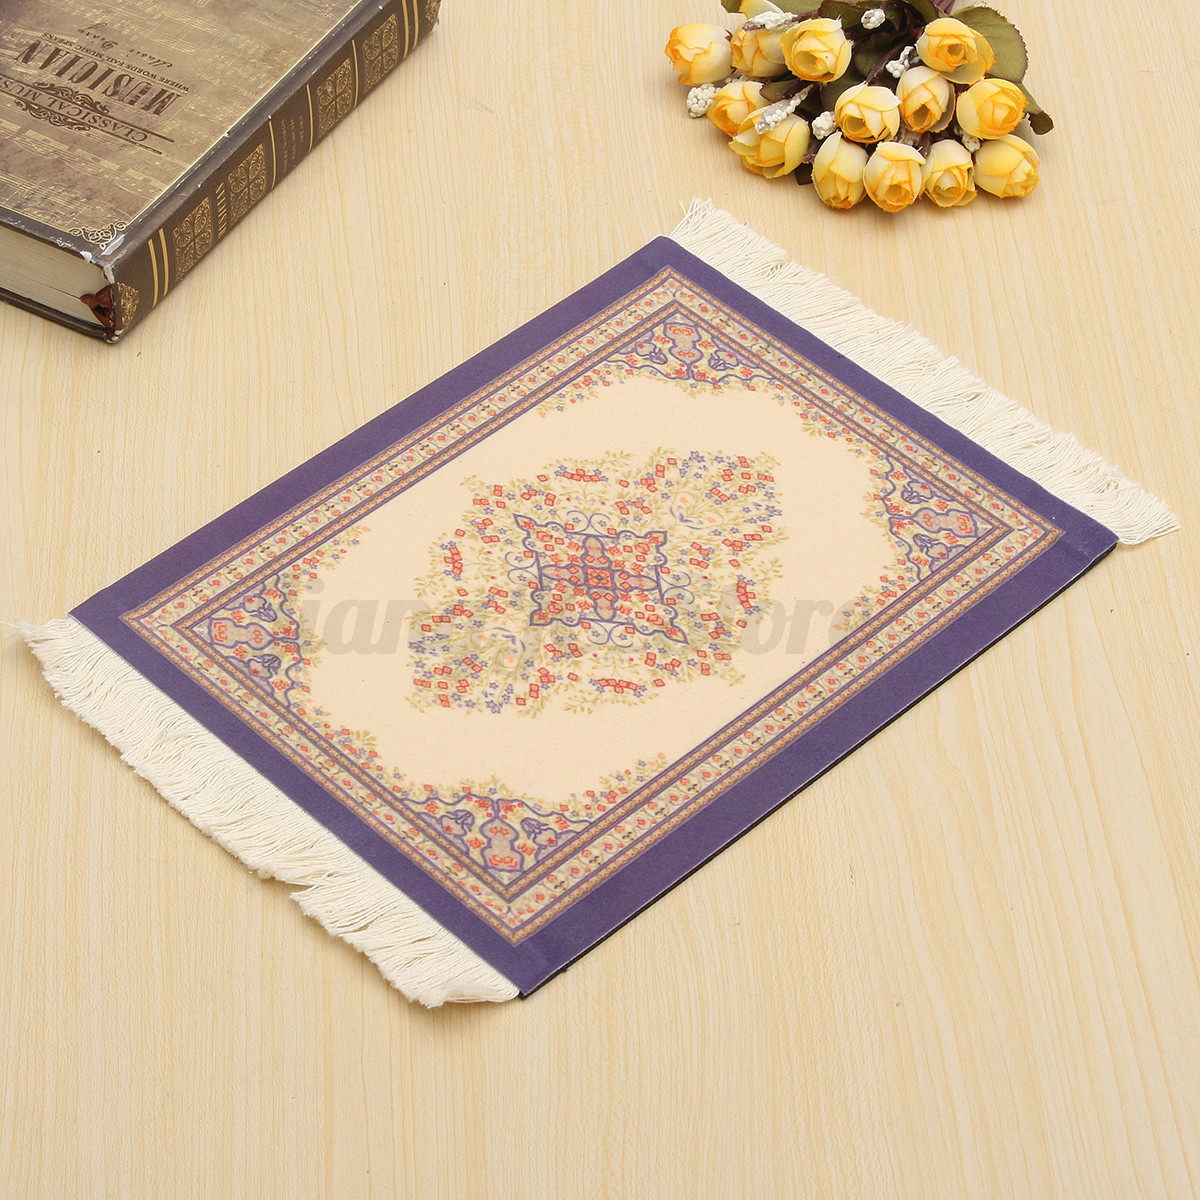 retro persian mouse pad mousemat blue red dot flower rug